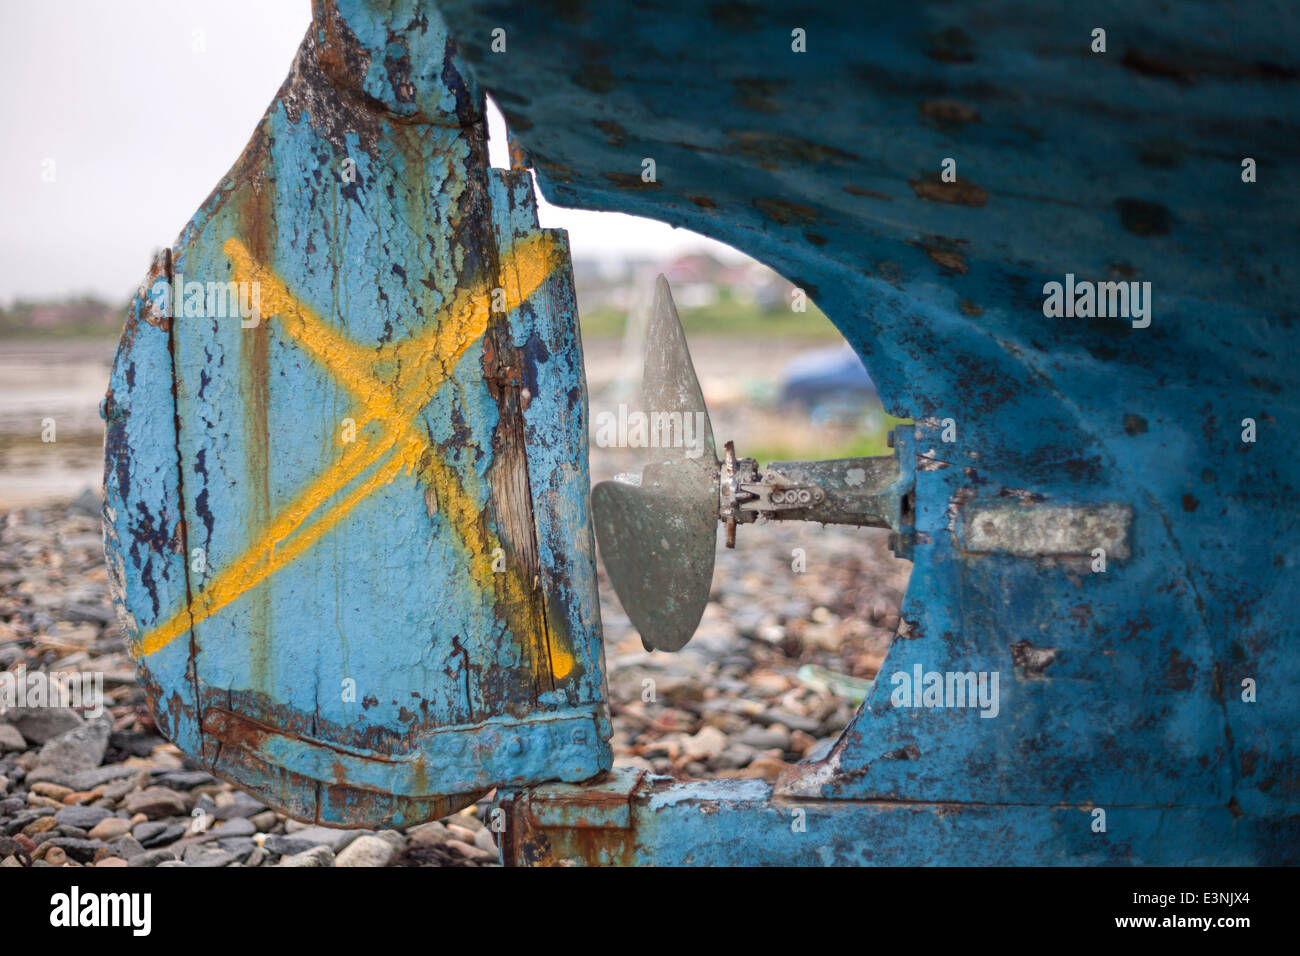 Rudder of blue fishing boat Le Grand Havre, Guernsey - Stock Image